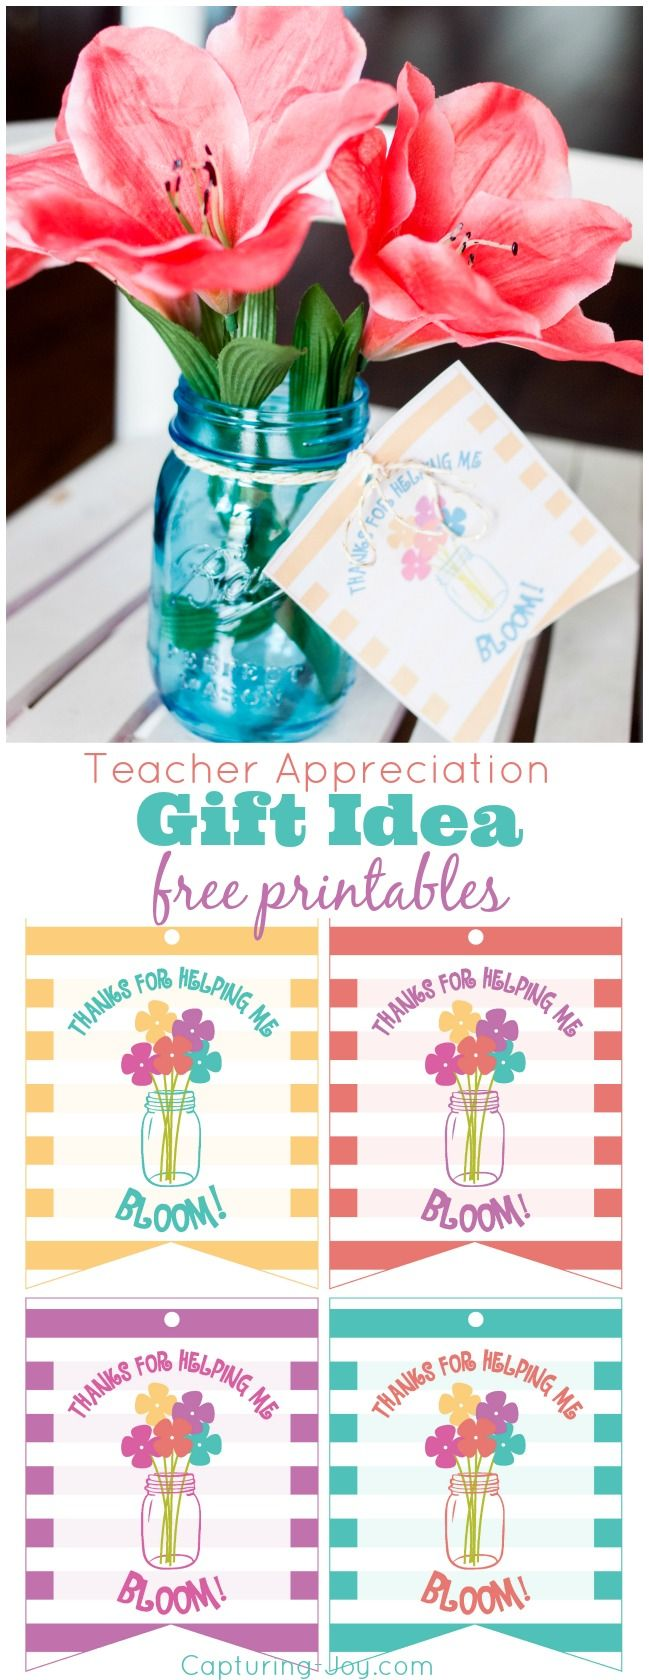 Teacher Appreciation Gift Idea Free Printables in 4 colors. Thank you for helping me BLOOM.